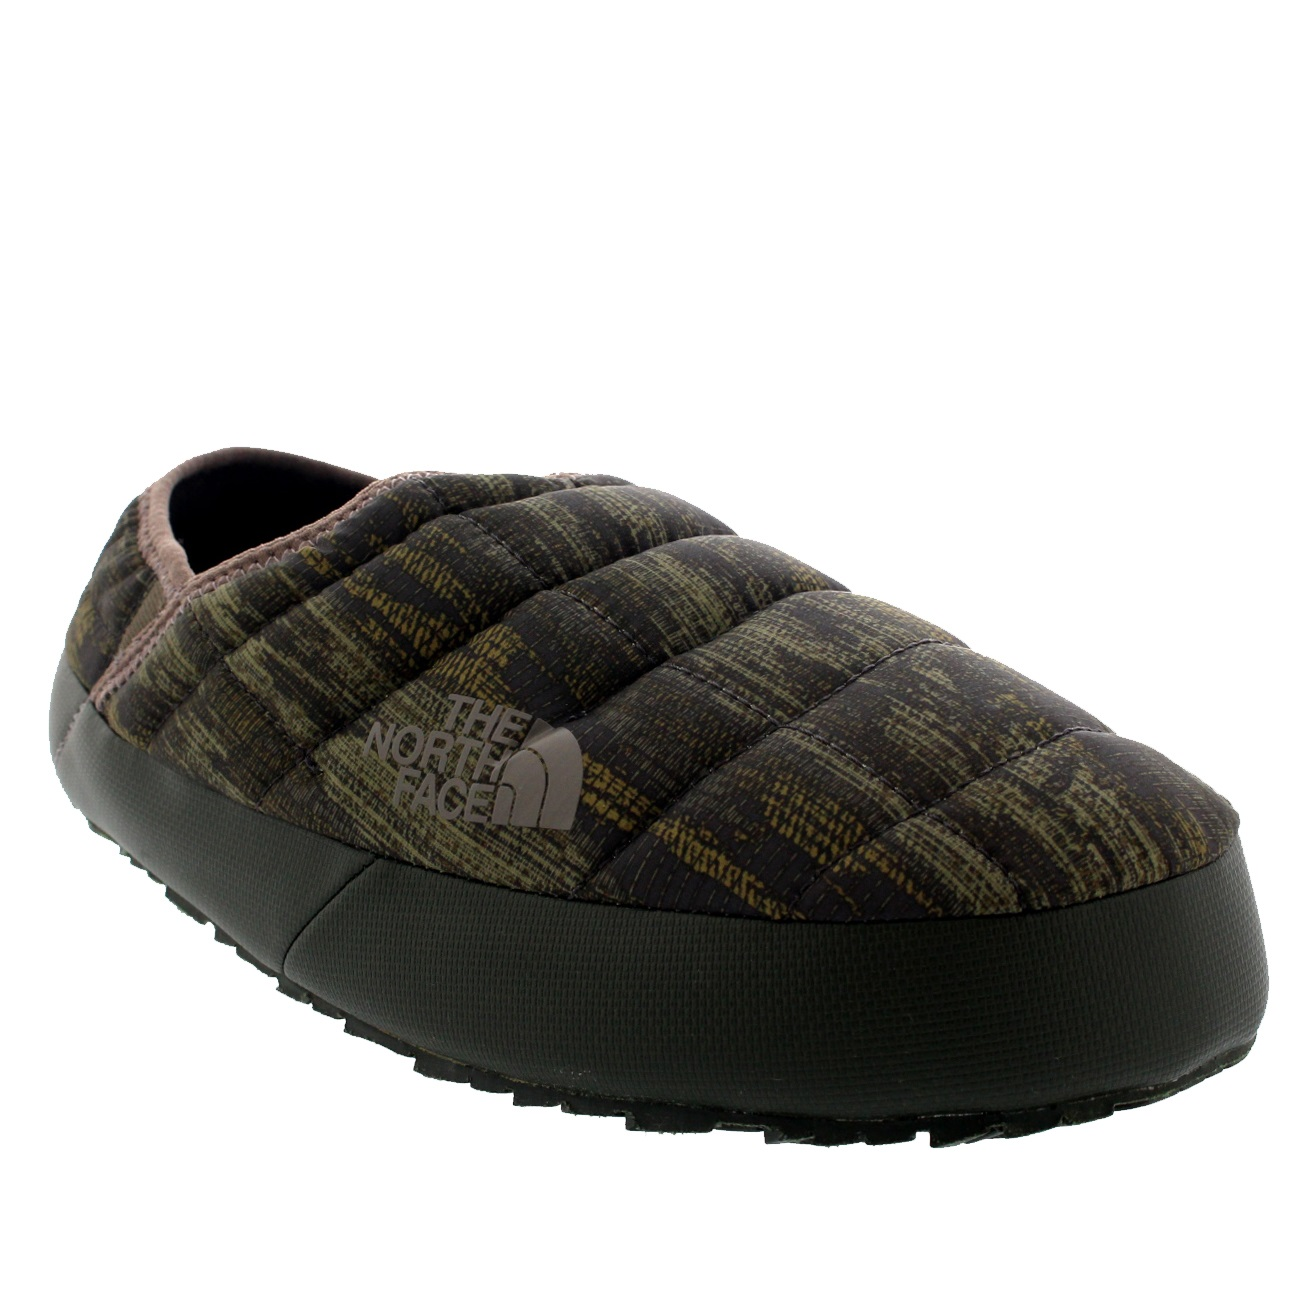 Mens The North Face Thermoball Traction Mule II Winter Insulated Slipper UK 7